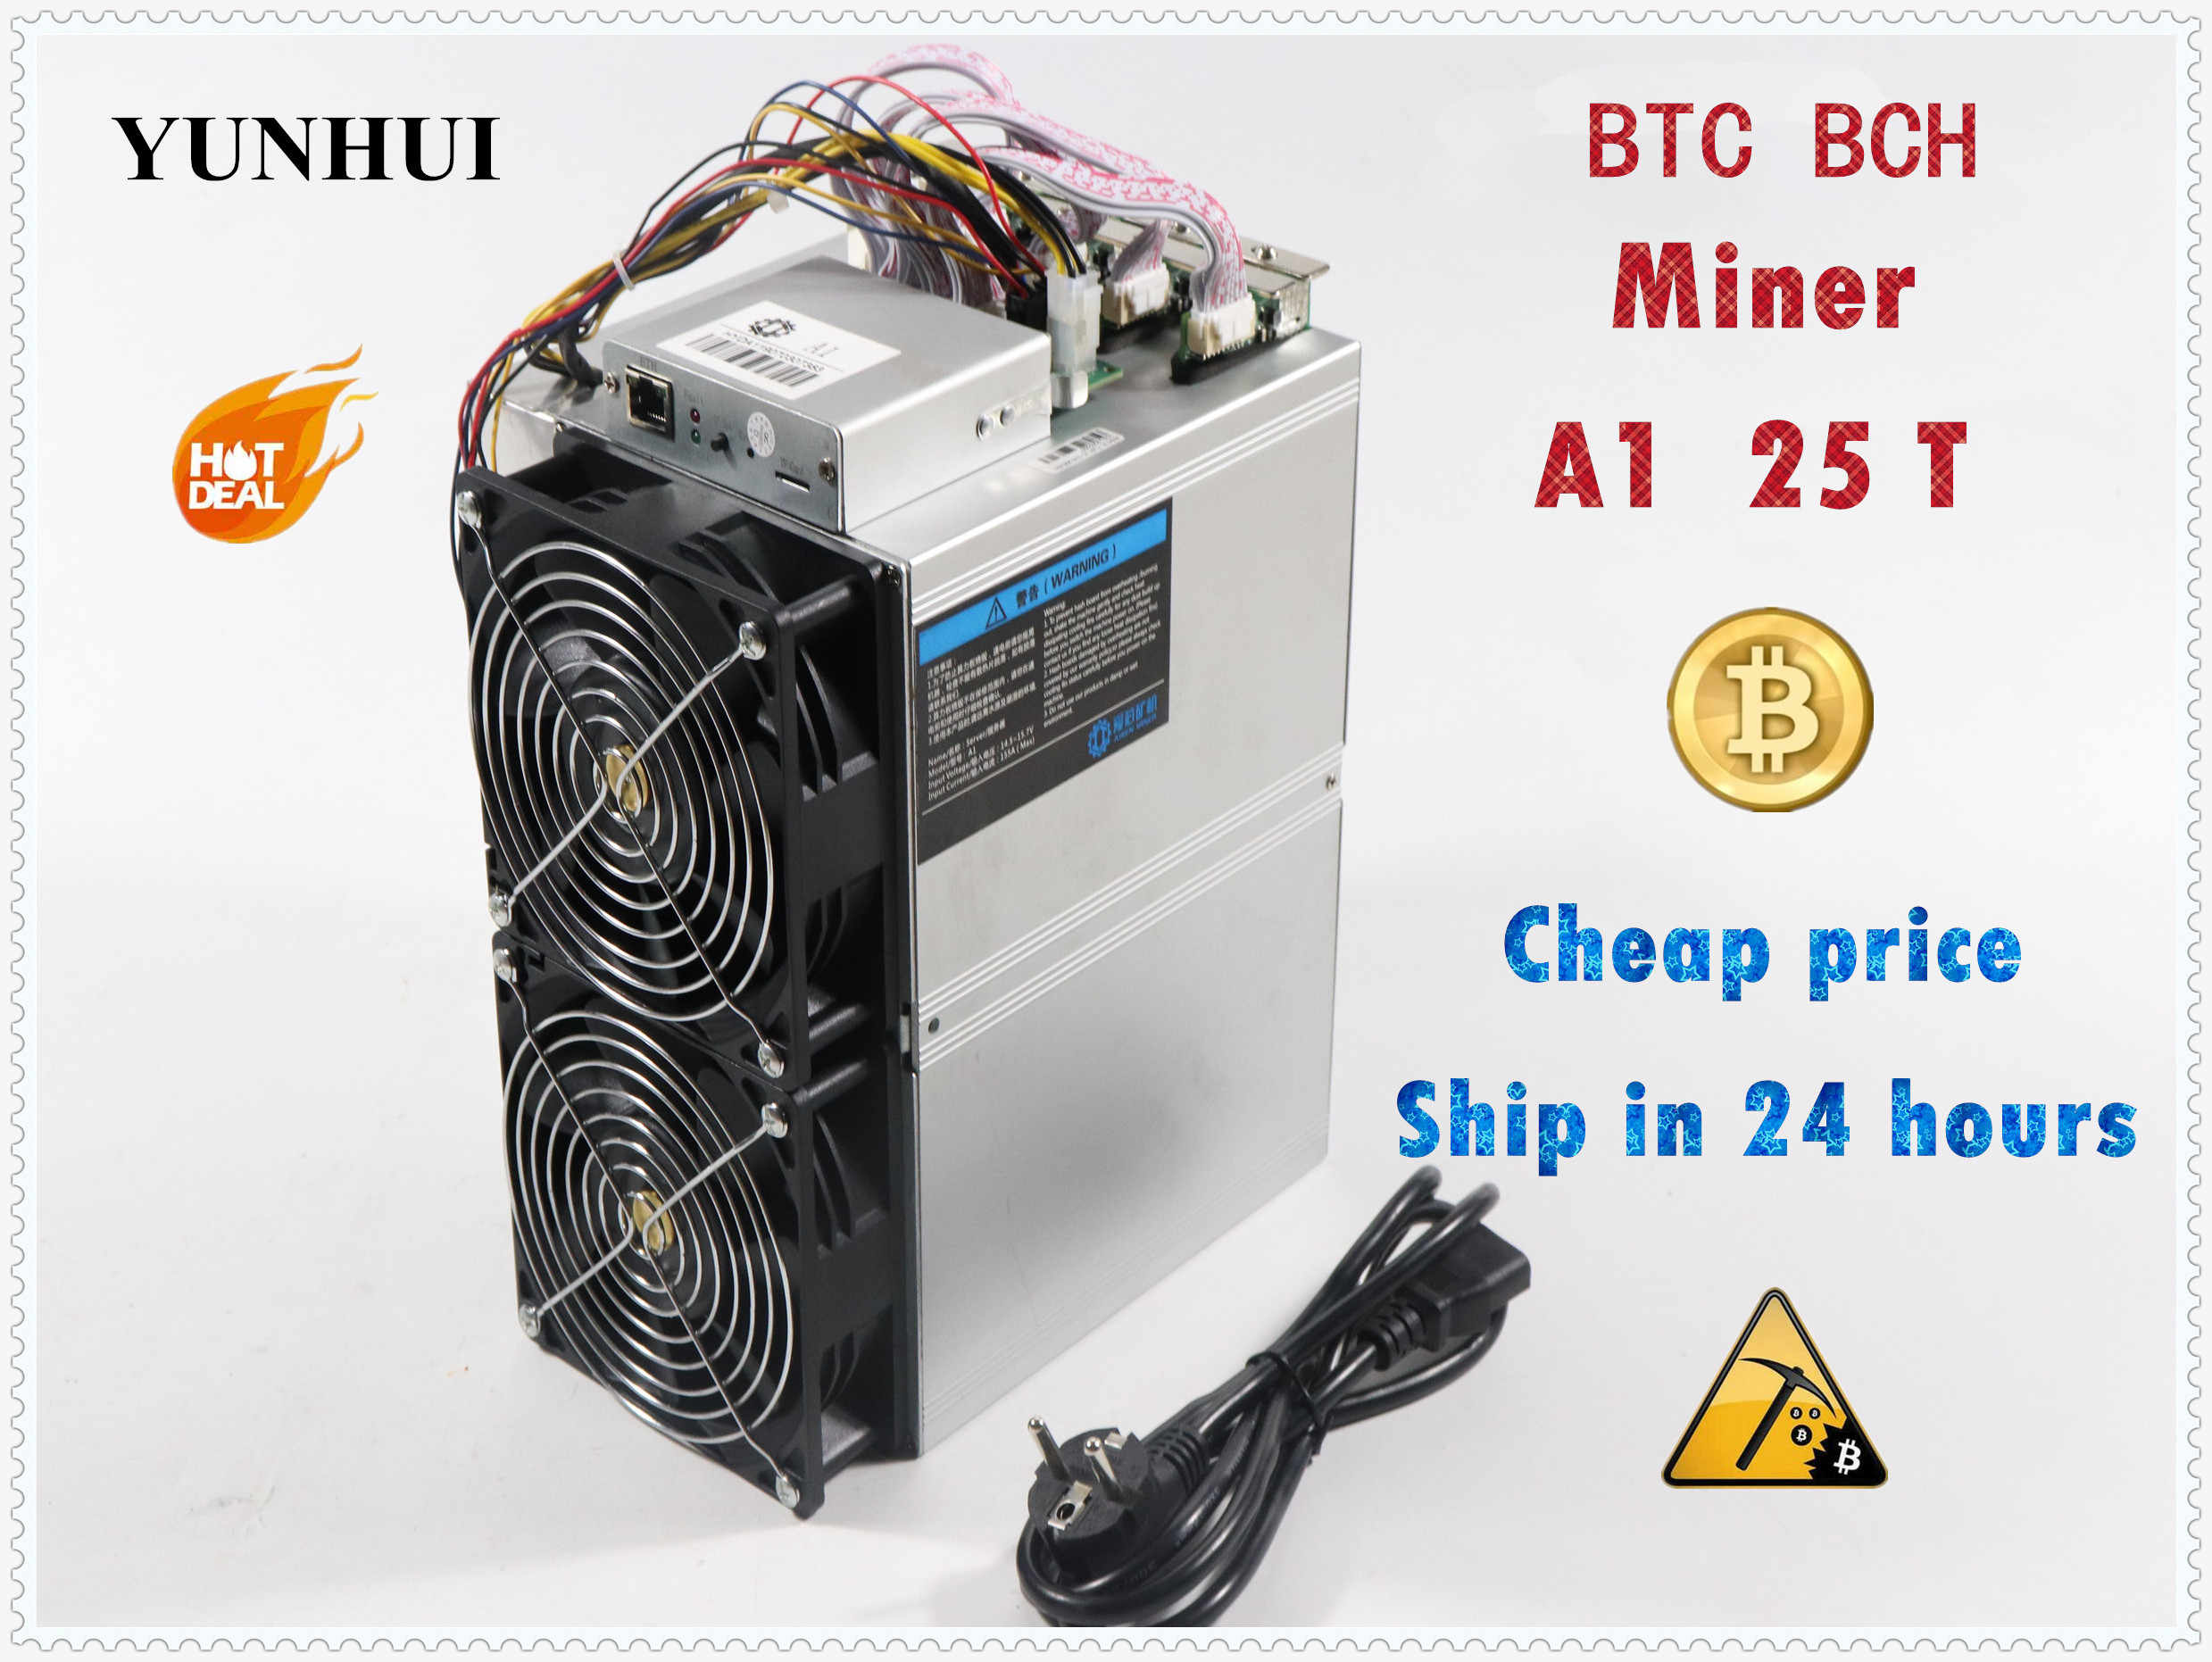 BTC BCH 鉱夫愛コア A1 鉱夫 Aixin A1 25T PSU と経済よりも Antminer S9 S11 S15 S17 t9 + T15 T17 WhatsMiner M3X